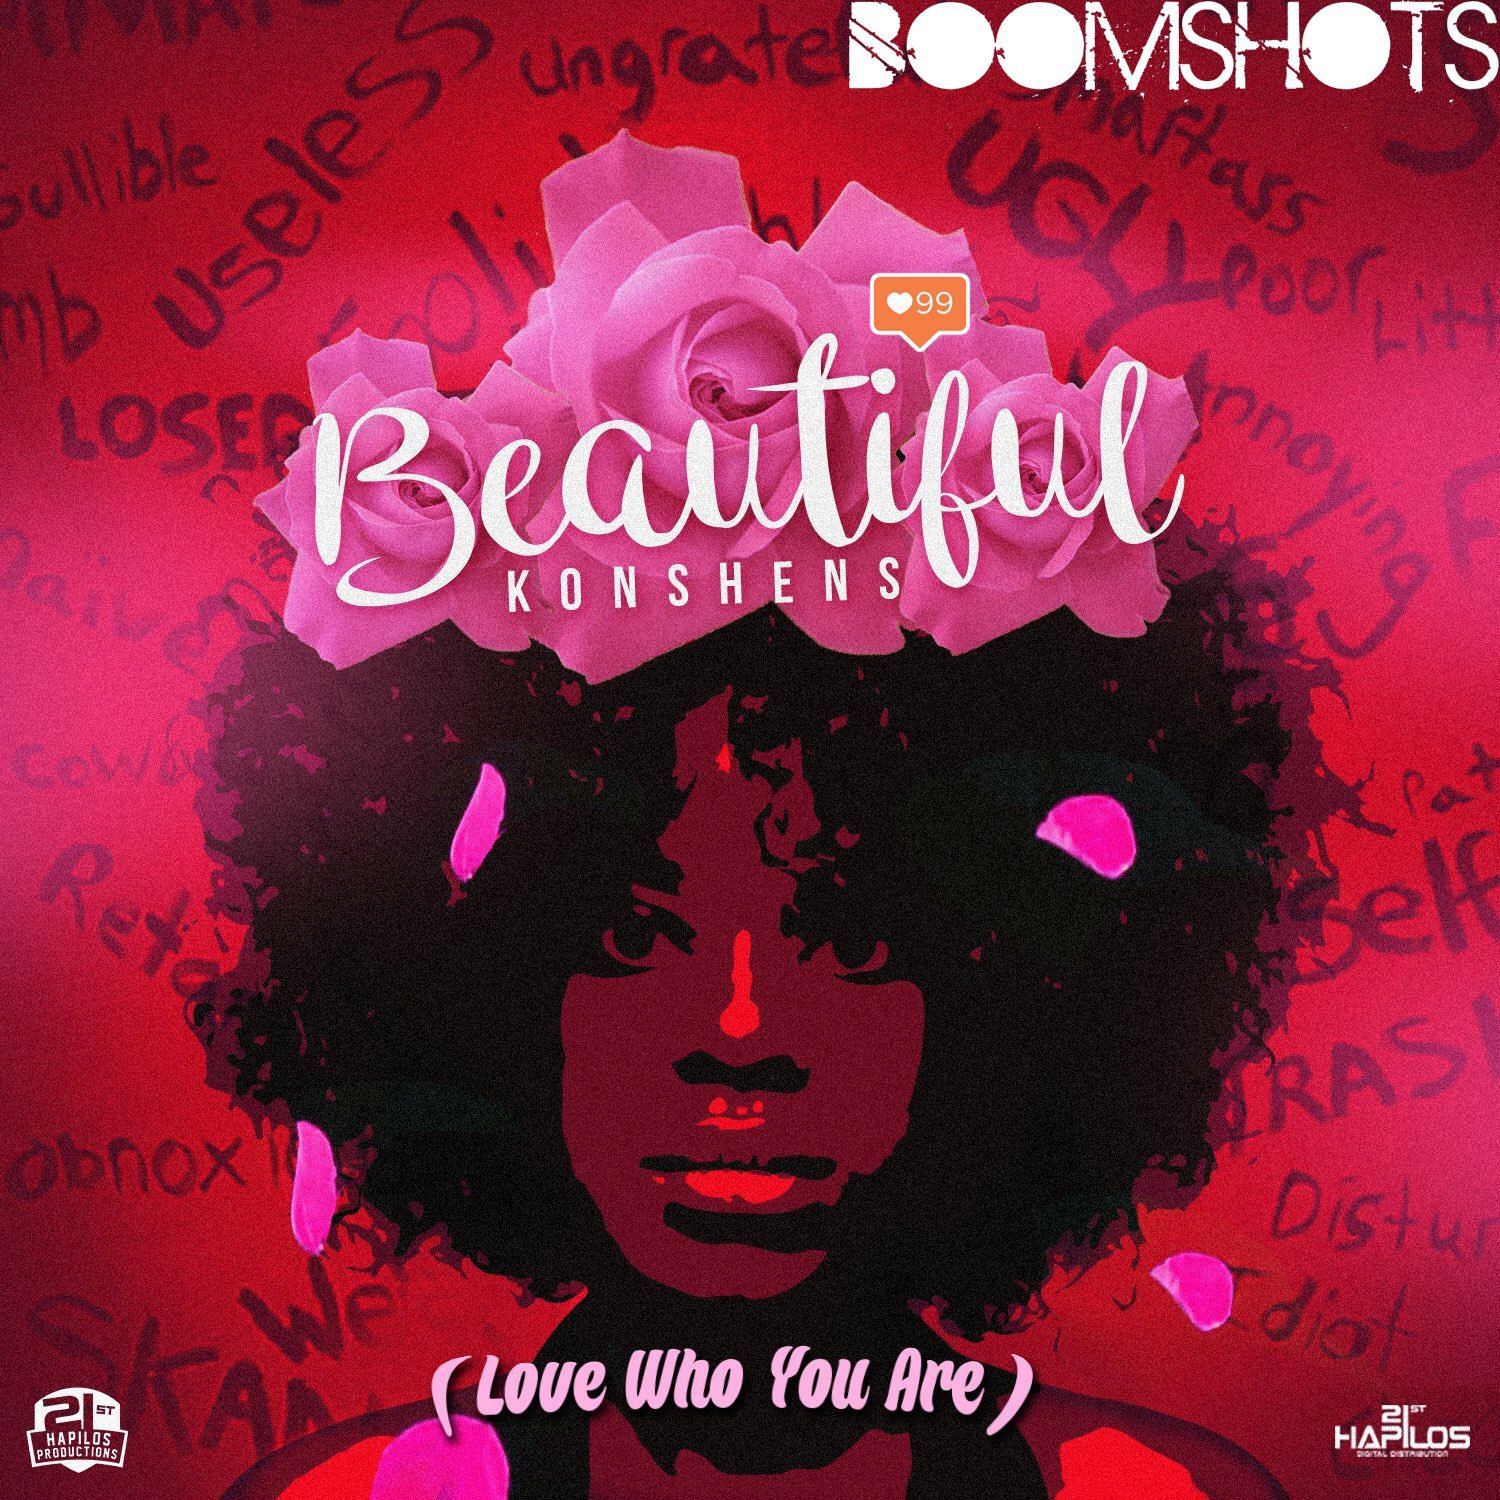 Konshens - Beautiful (Love Who You Are)